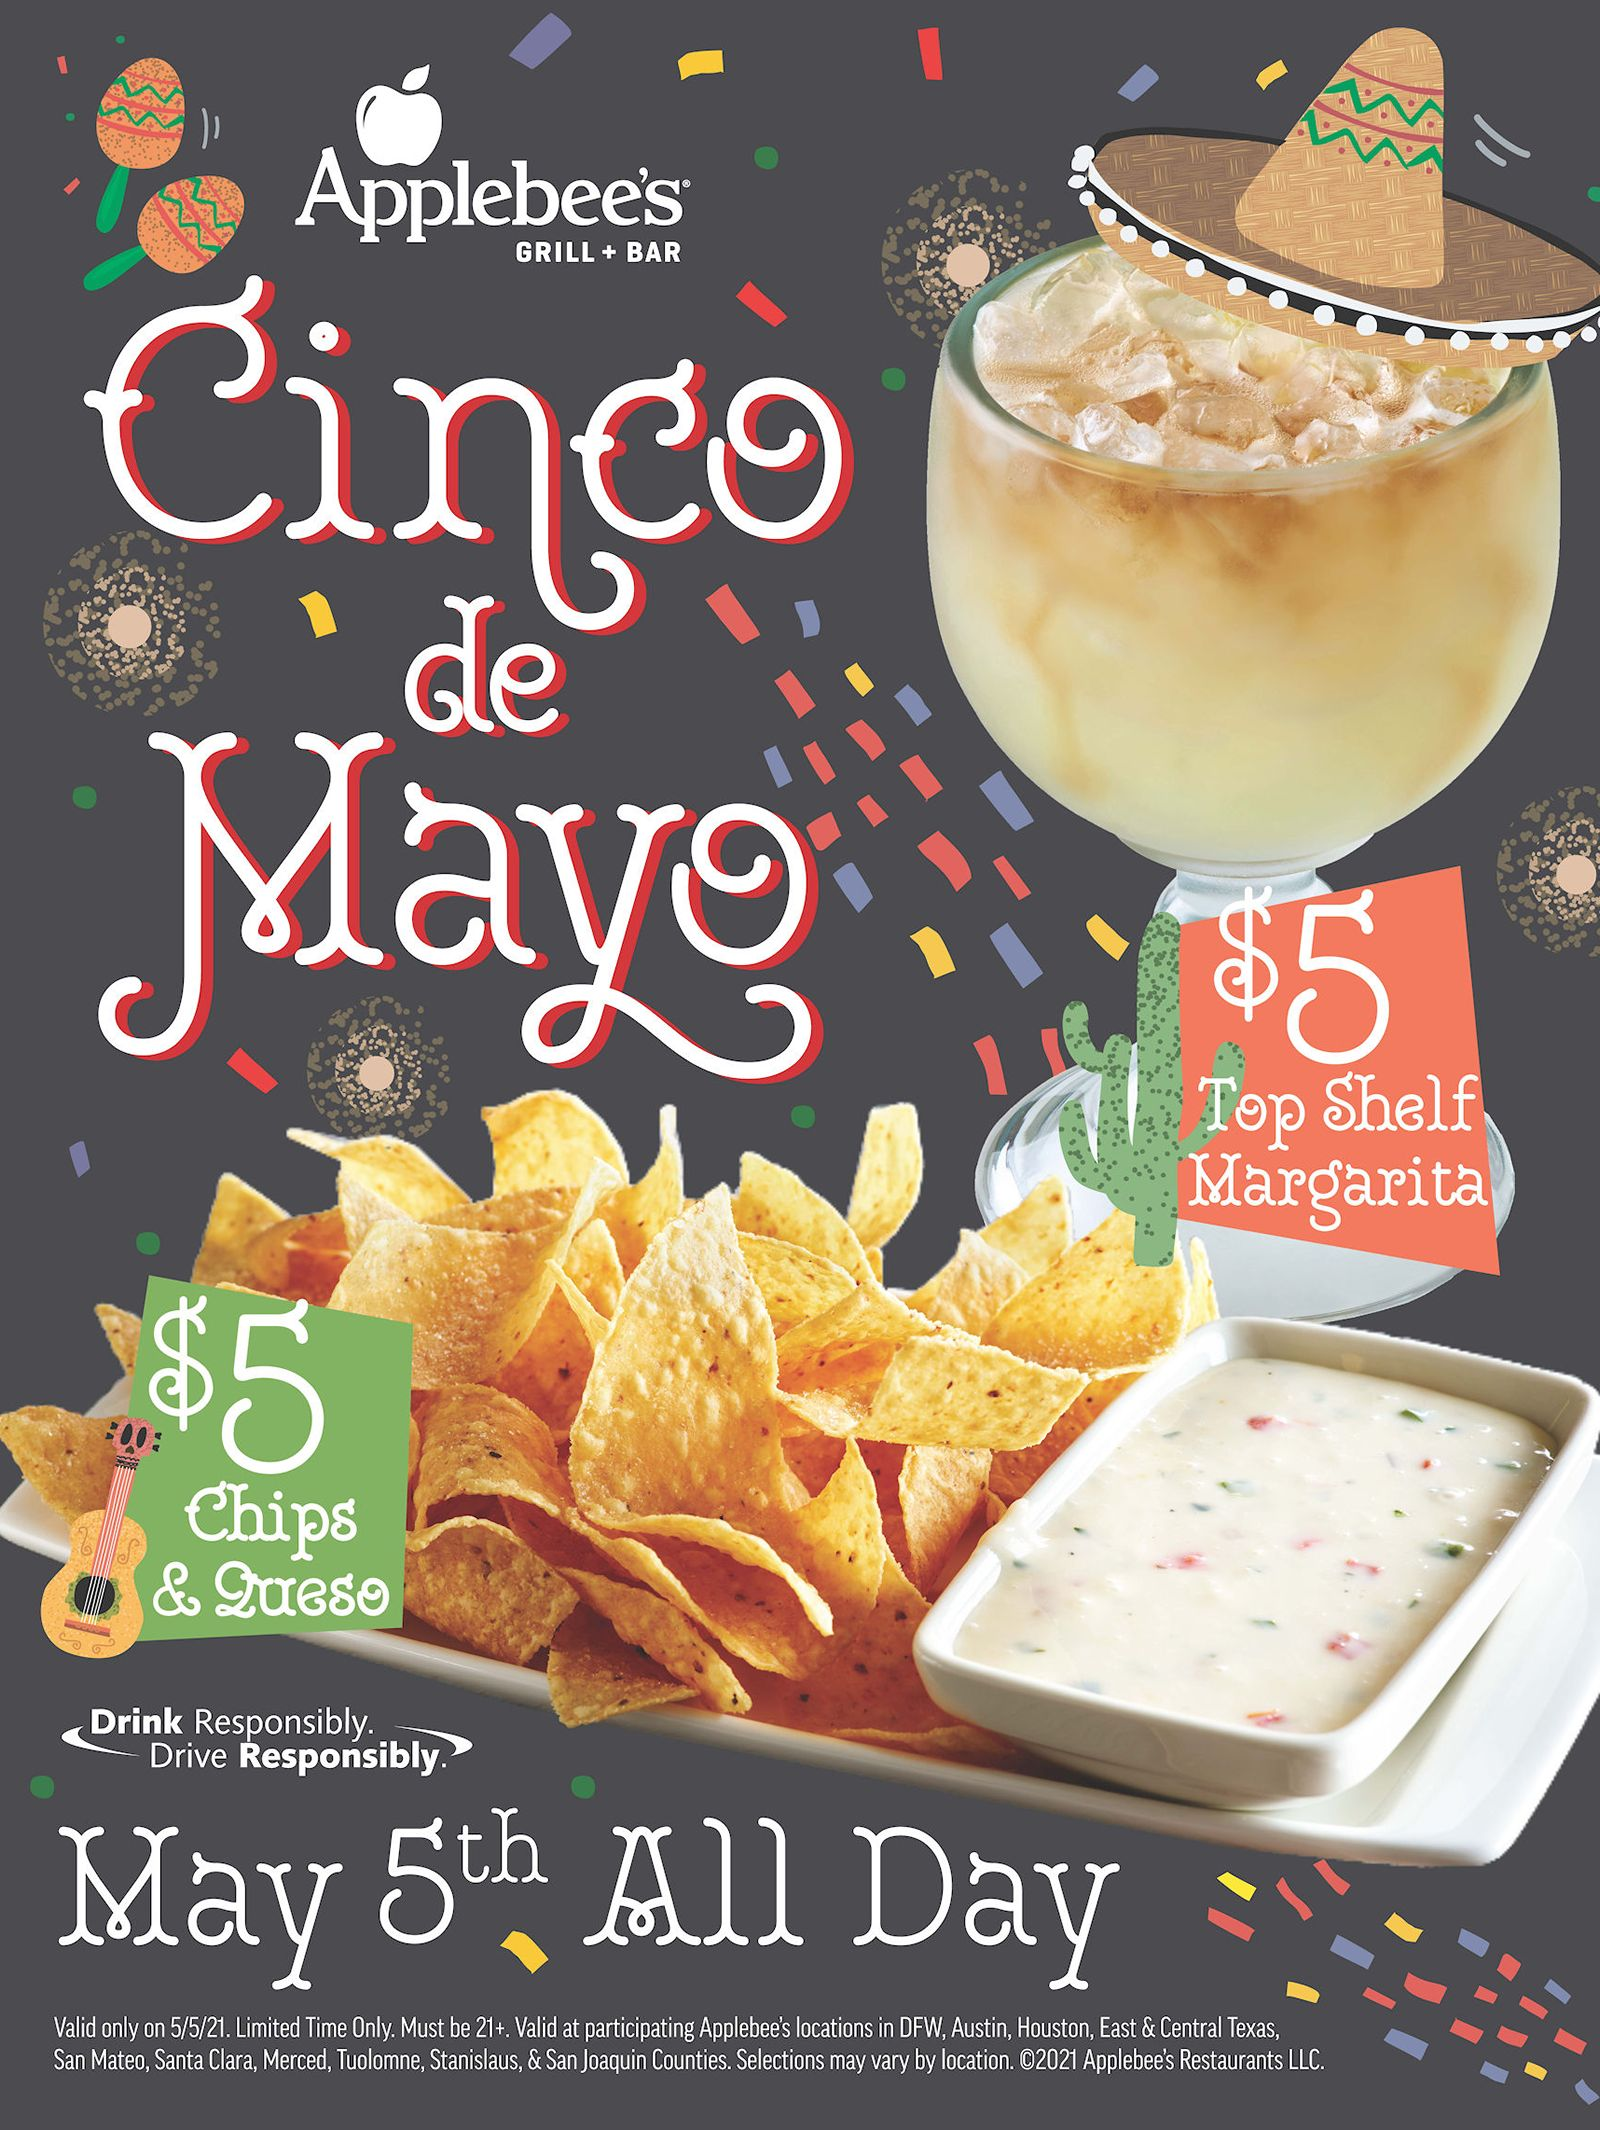 Applebee's Restaurants in the Dallas/Fort Worth Metroplex Will Feature the DOLLARITA - Margaritas for a Buck - for the Rest of May 2021